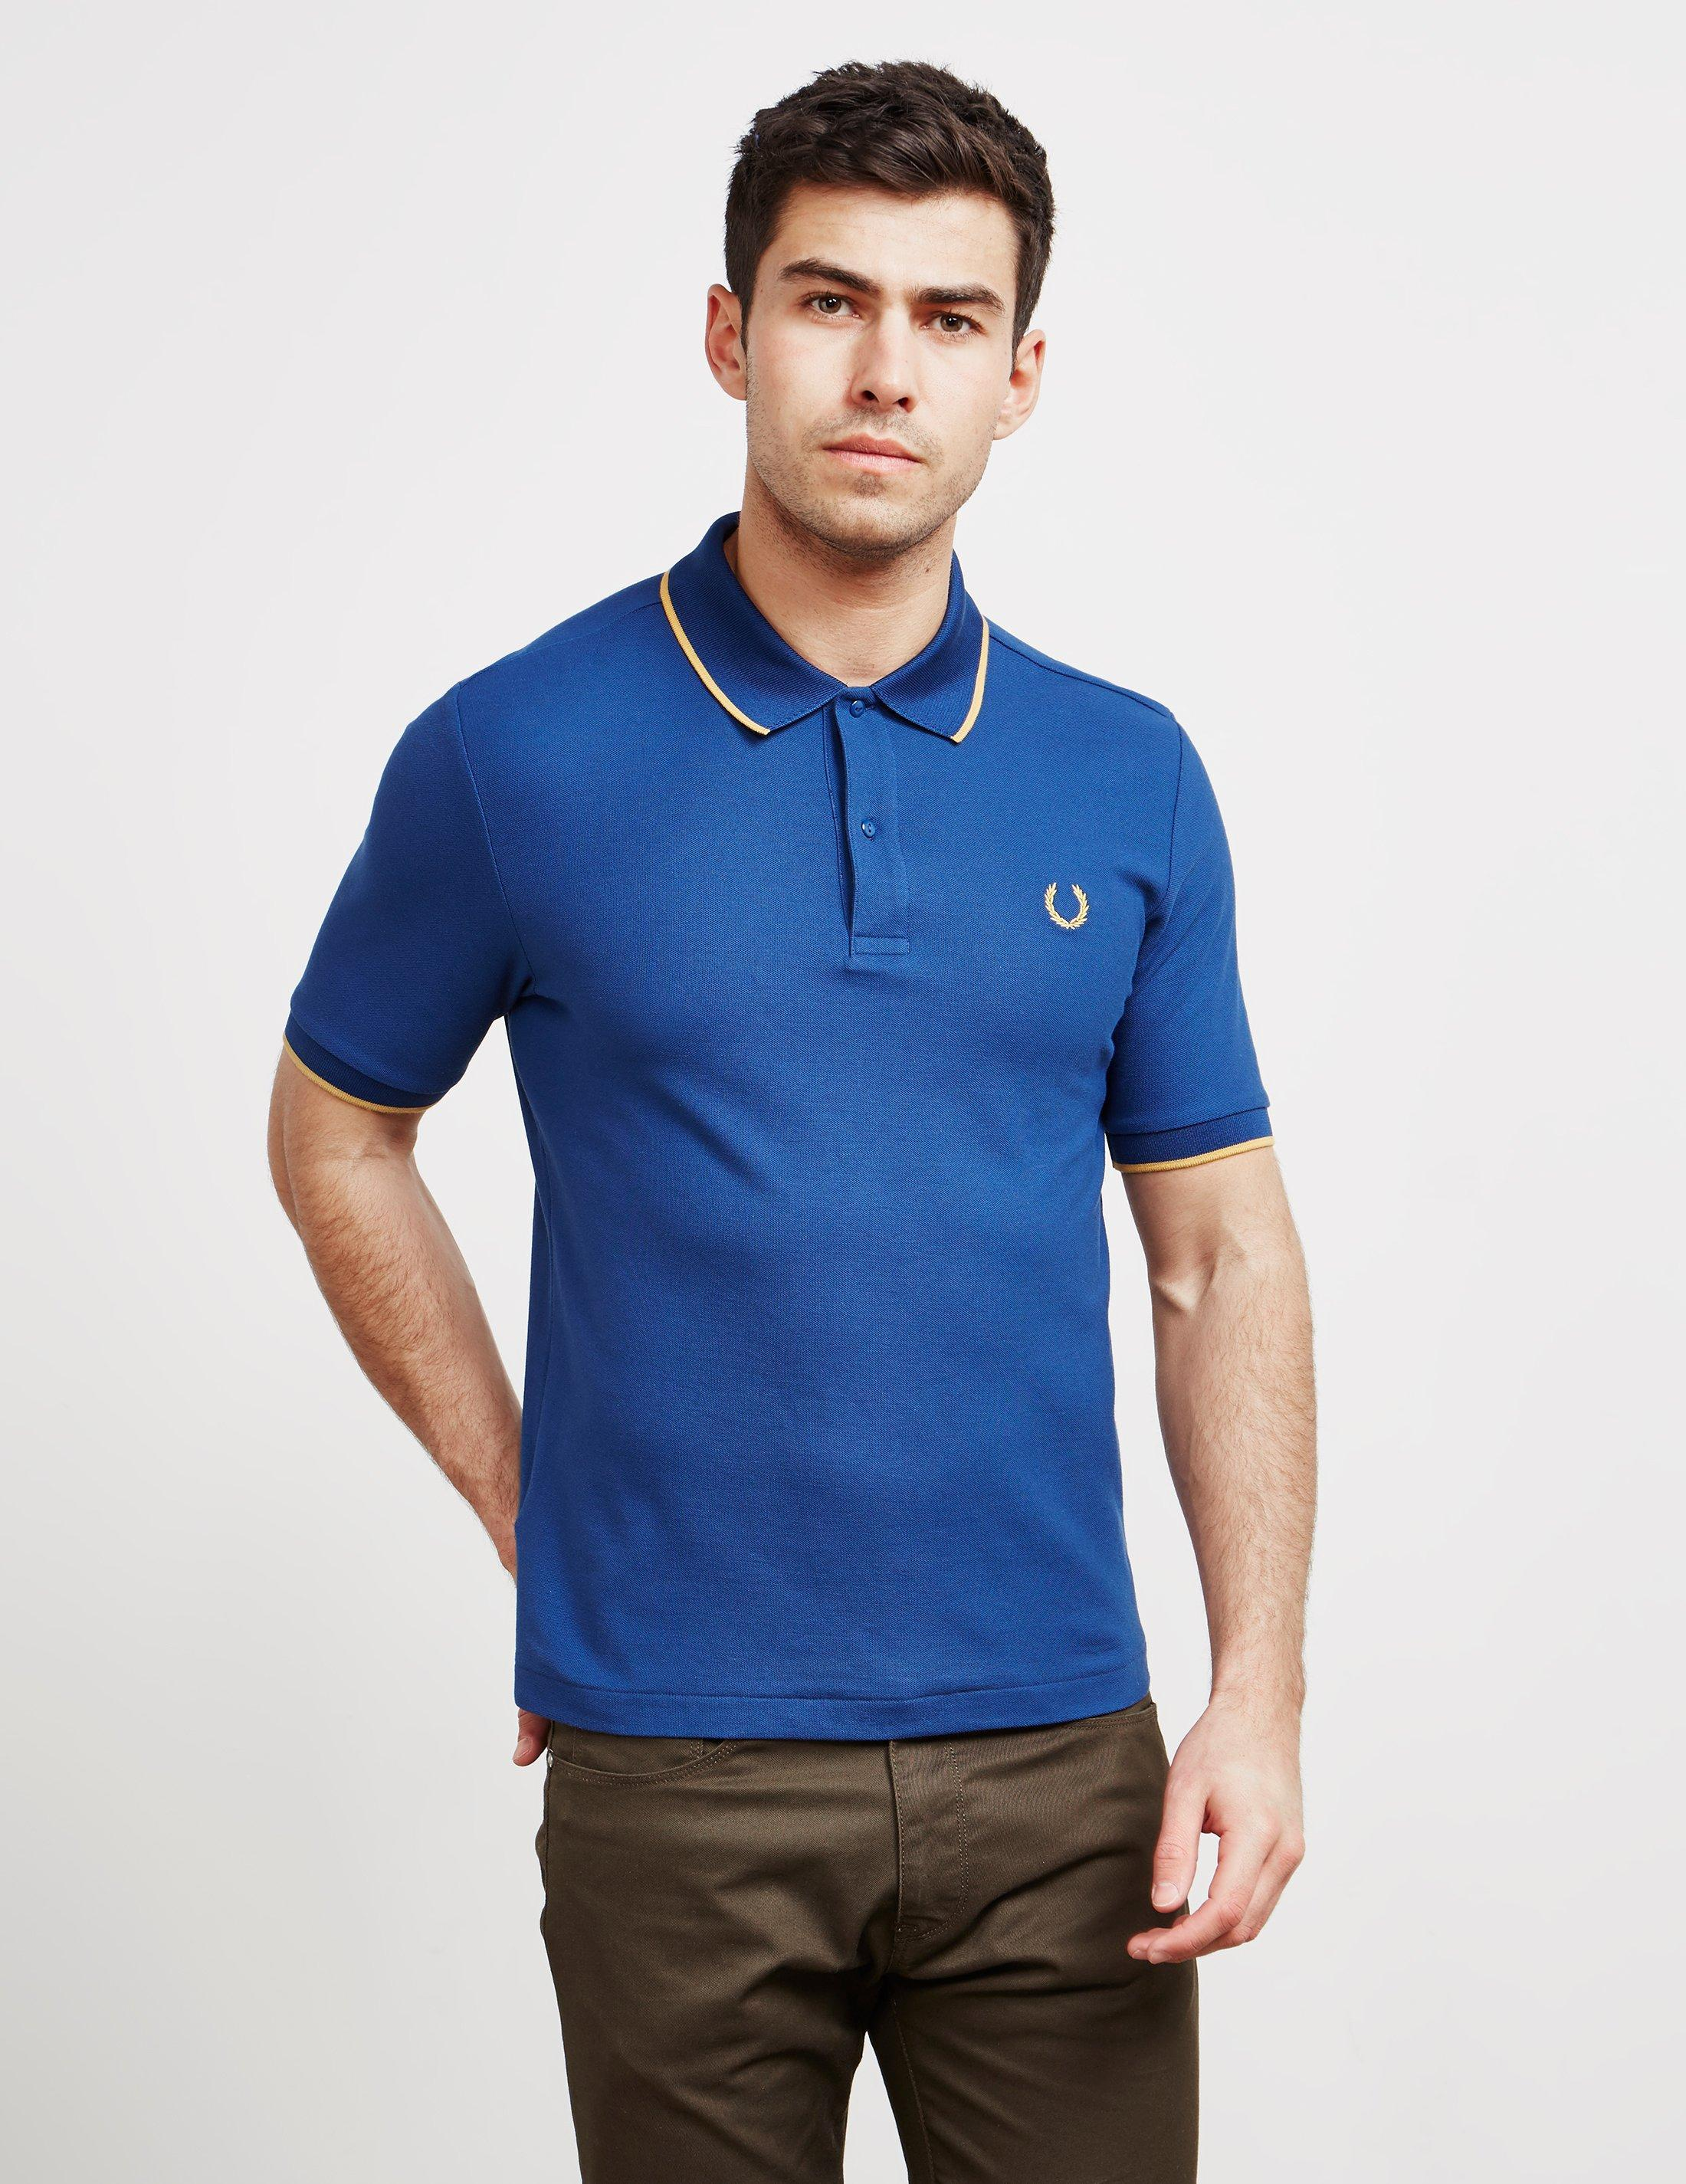 d0d184310fb0 Lyst - Fred Perry Mens X Miles Kane Short Sleeve Pique Polo Shirt ...